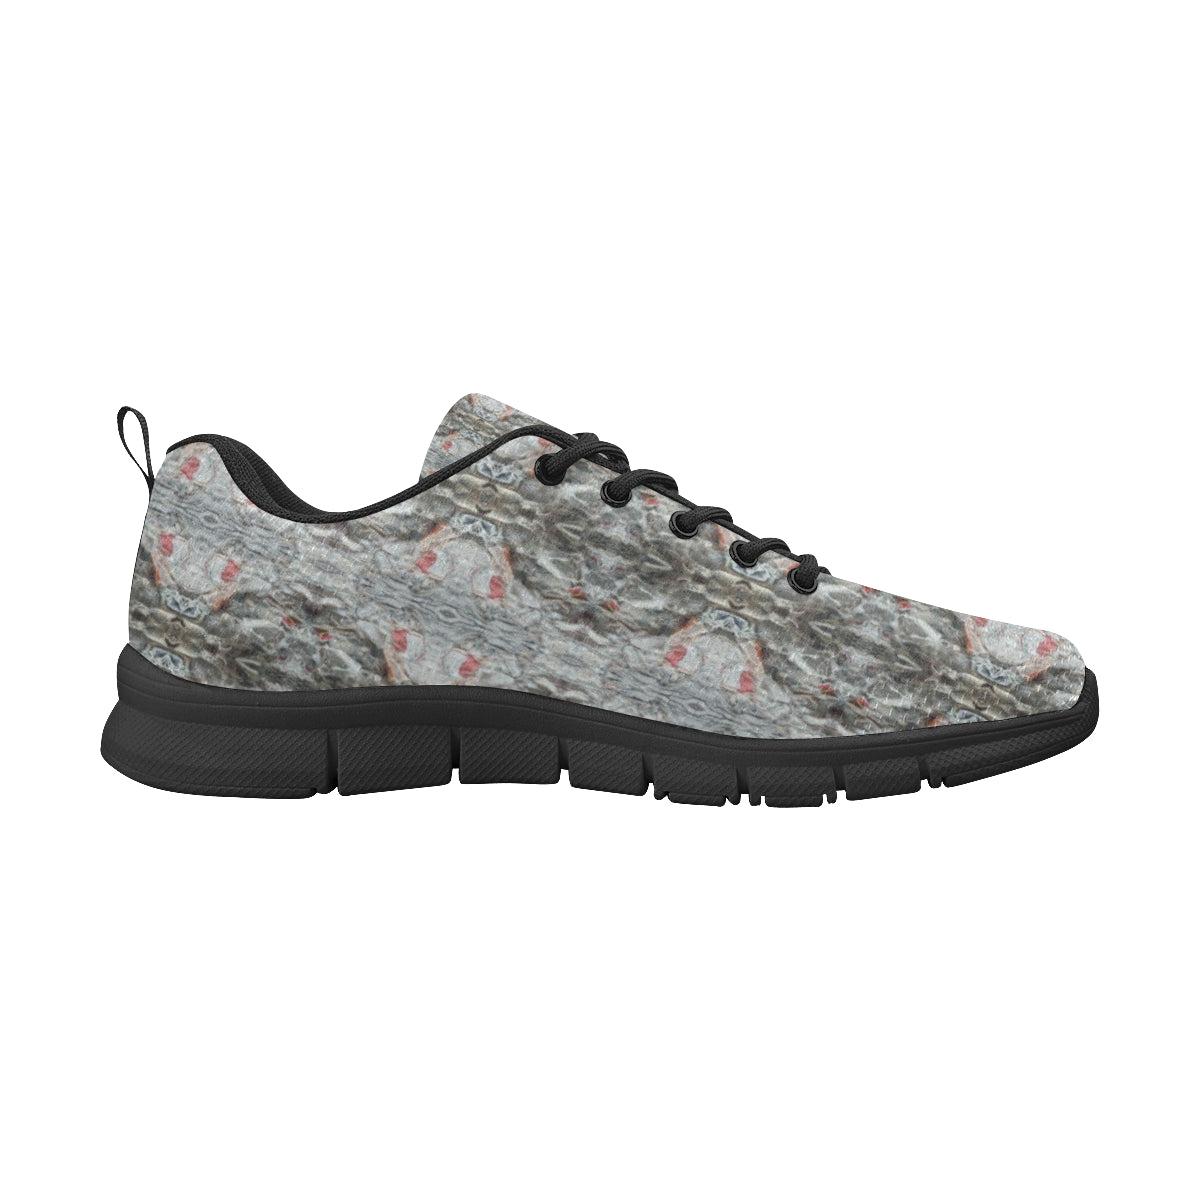 ChuArts Men's Breathable Sneakers